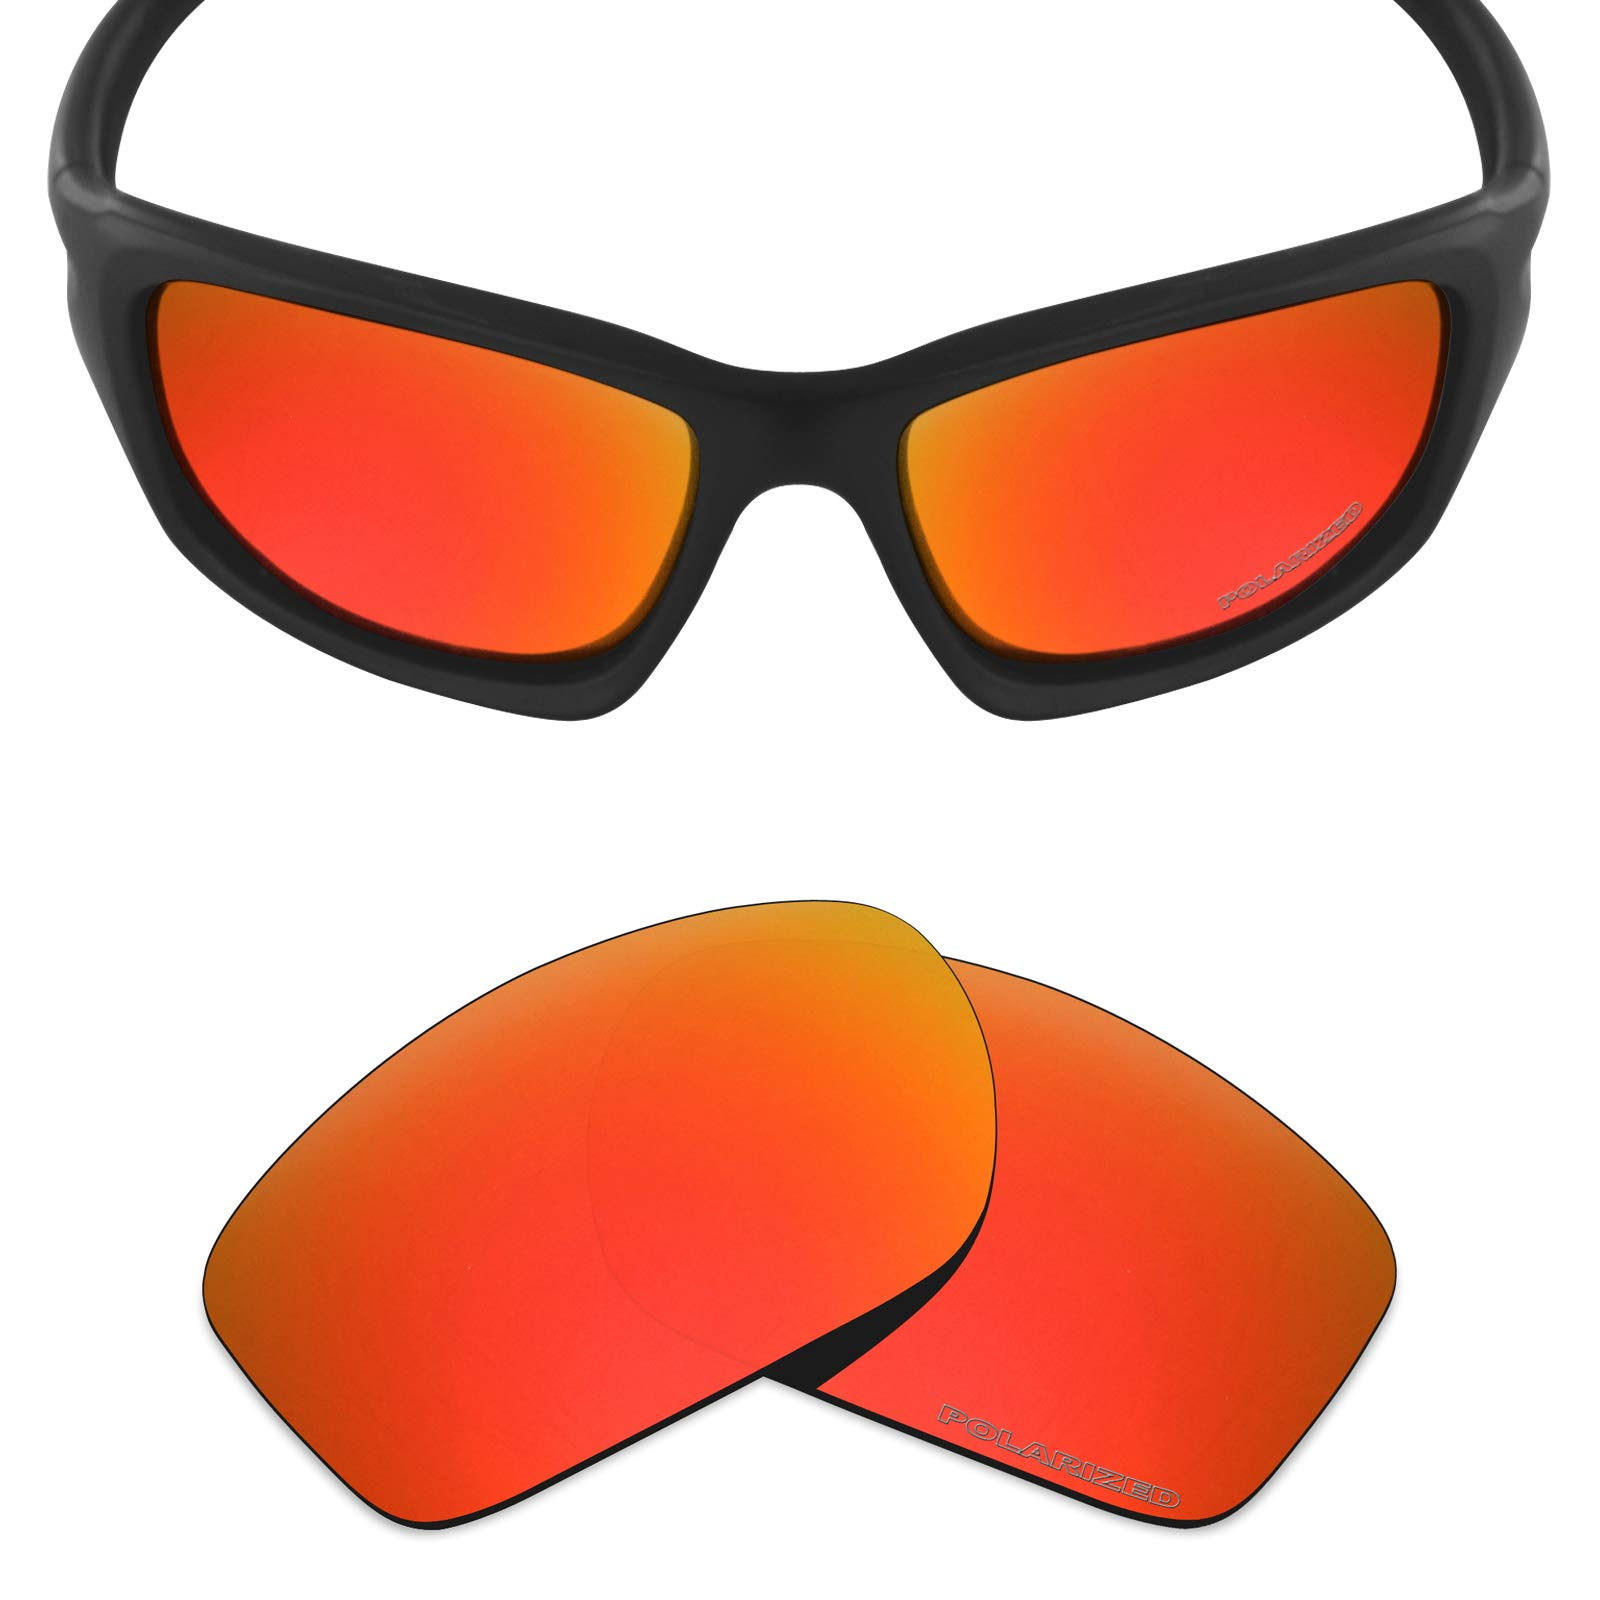 b8ea2687ee0 Mryok+ Polarized Replacement Lenses for Oakley Valve New 2014 - Fire Red